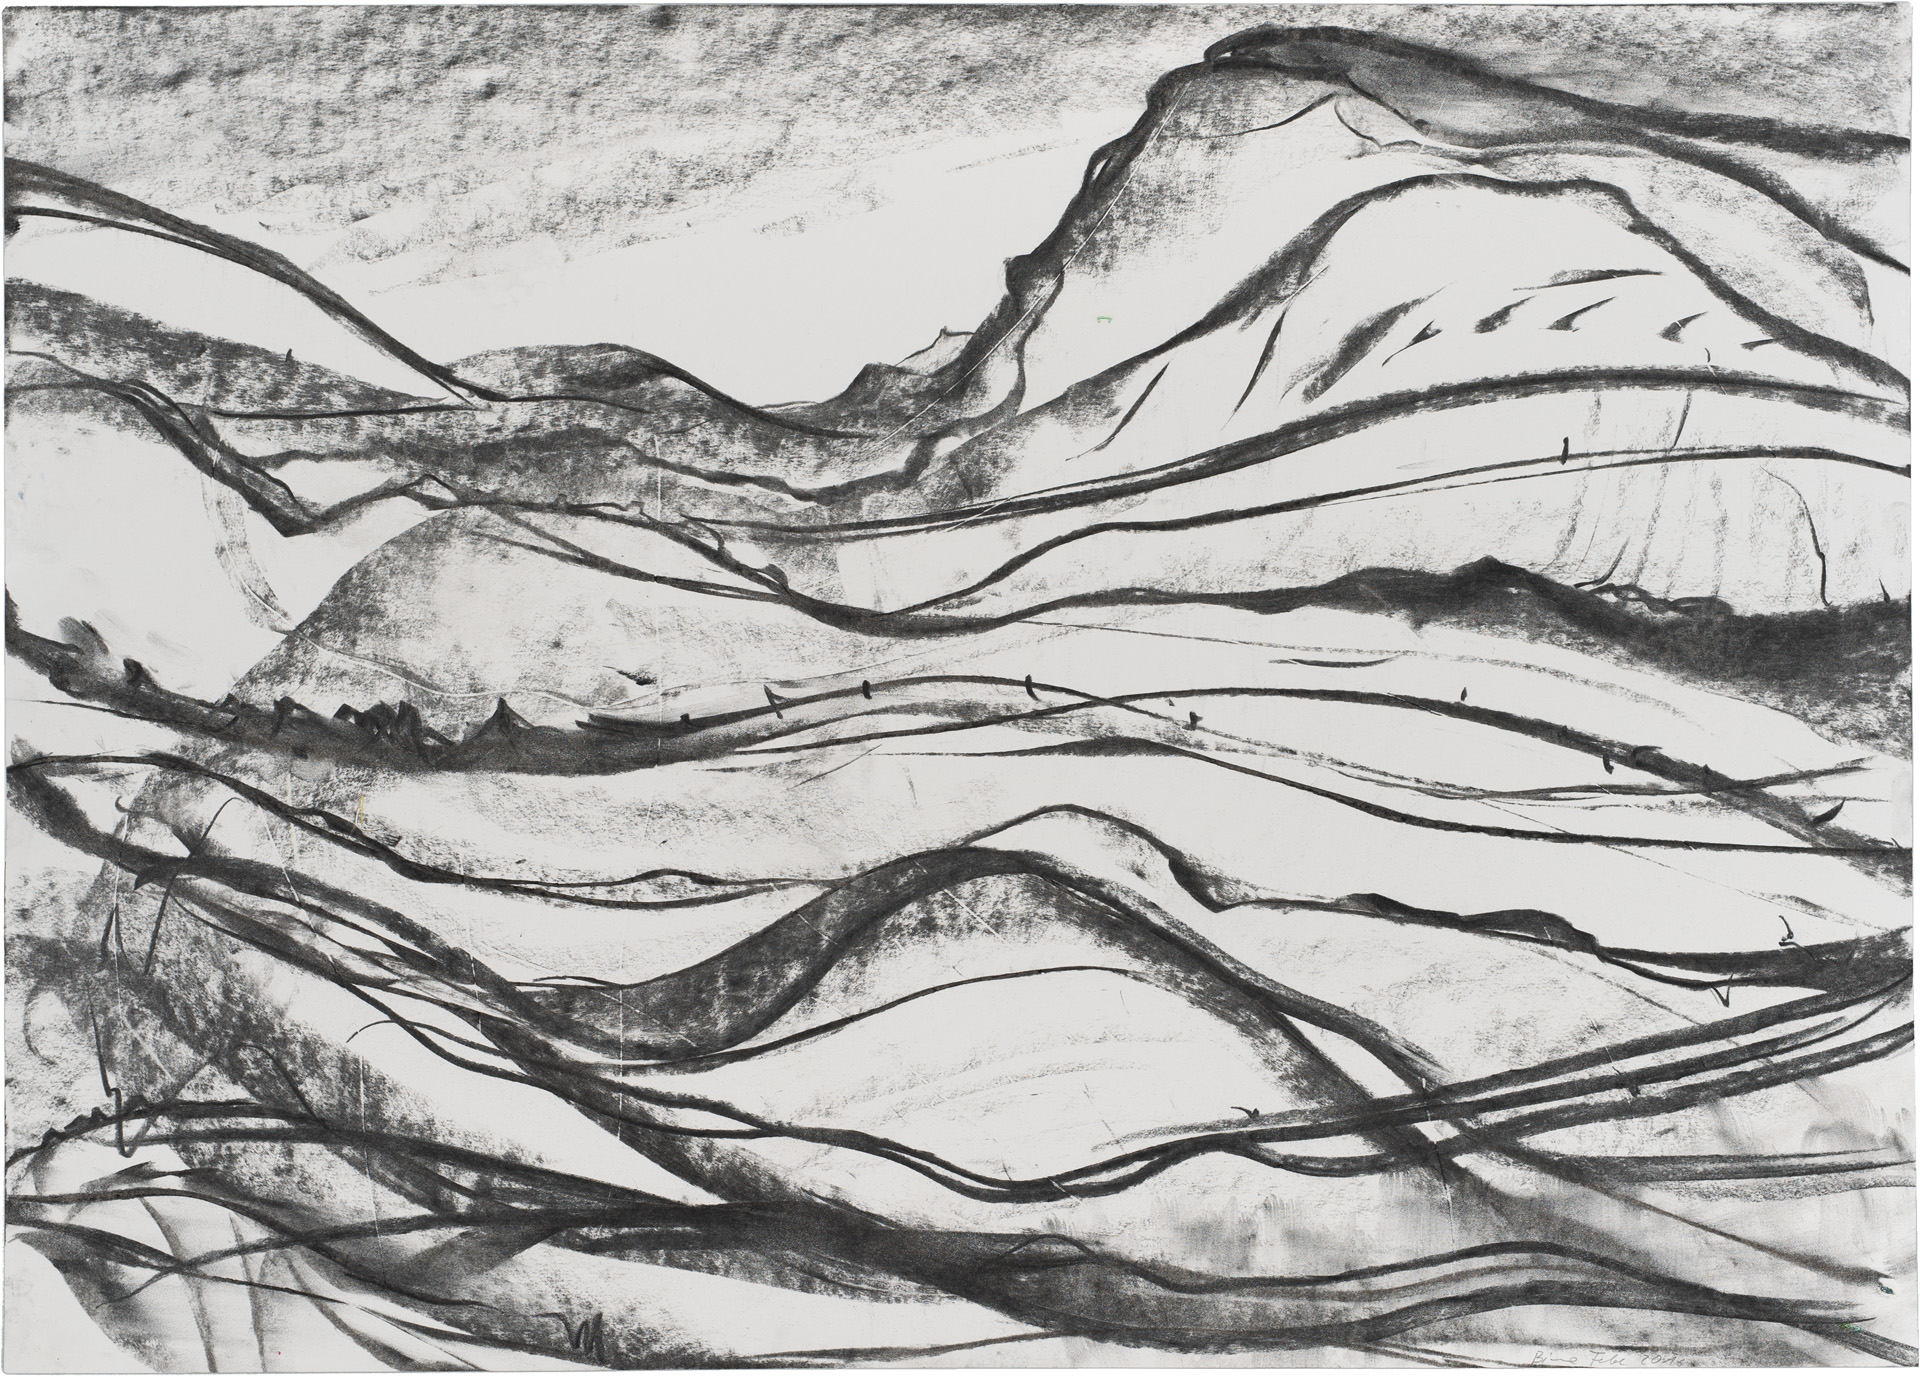 BieneFeld – untitled, 2016,charcoal on paper, 50 x 70 cm